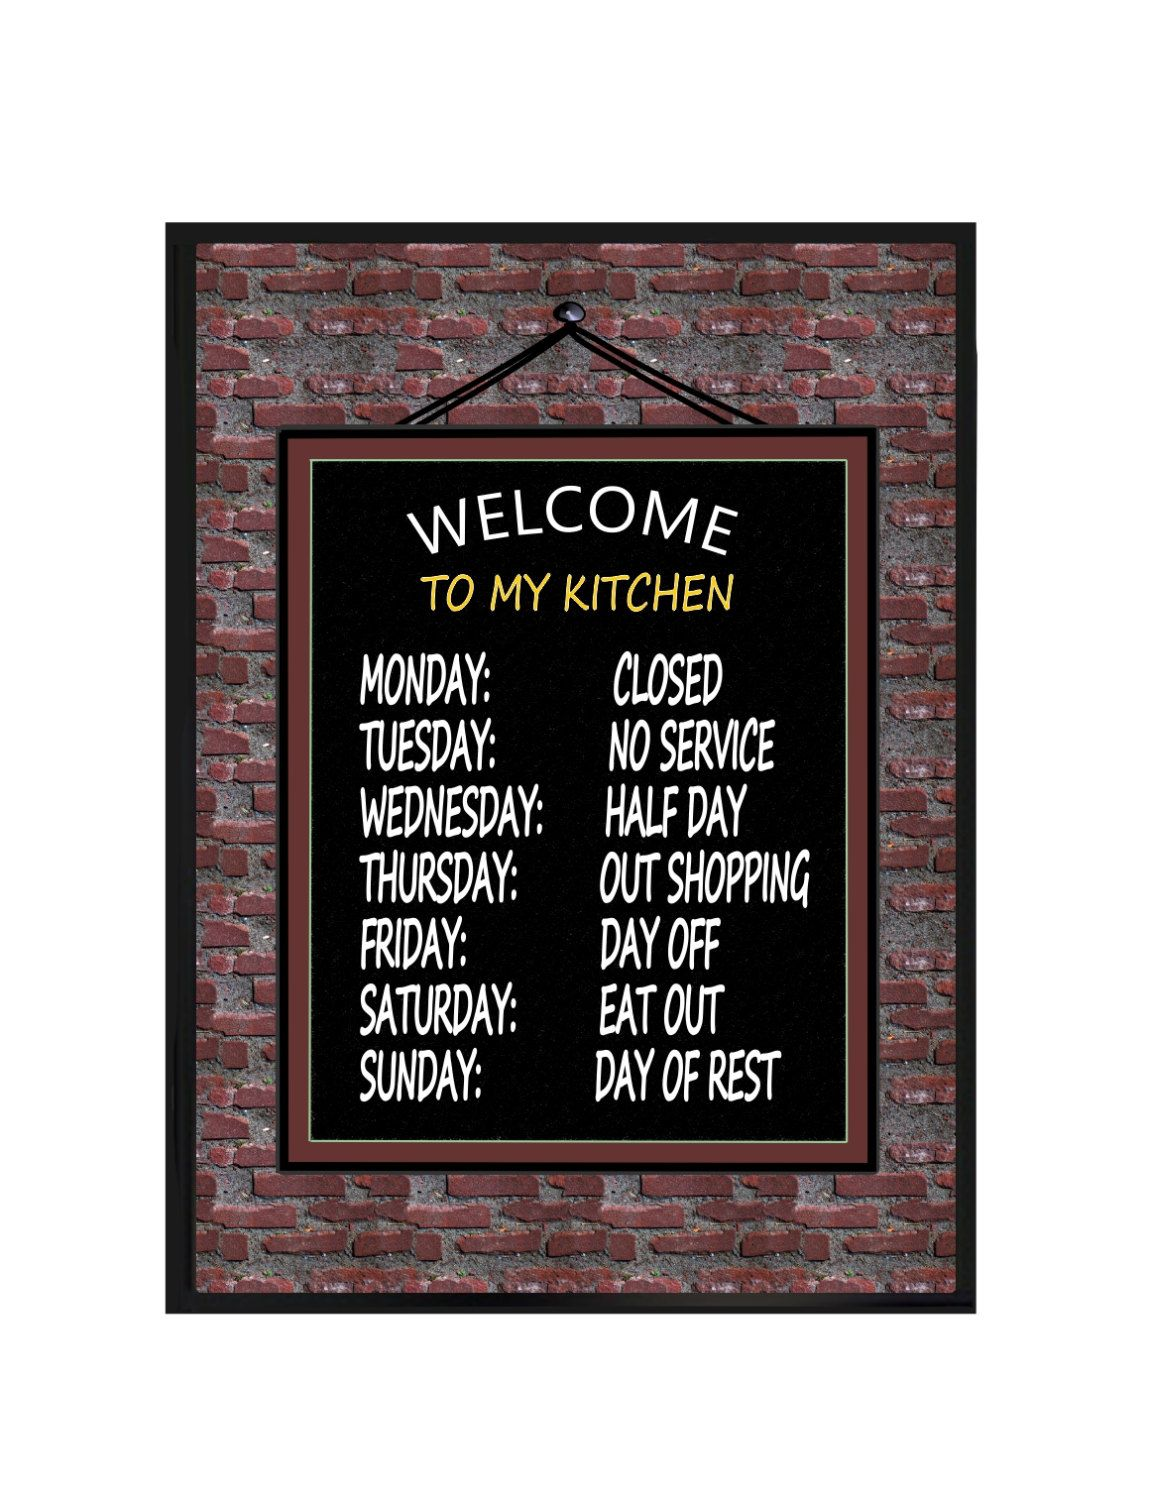 Welcome To My Kitchen Wall Plaque 8 X 10 Decor Funny Quotes Hanging Sign By Photogiftskalucaart On Etsy